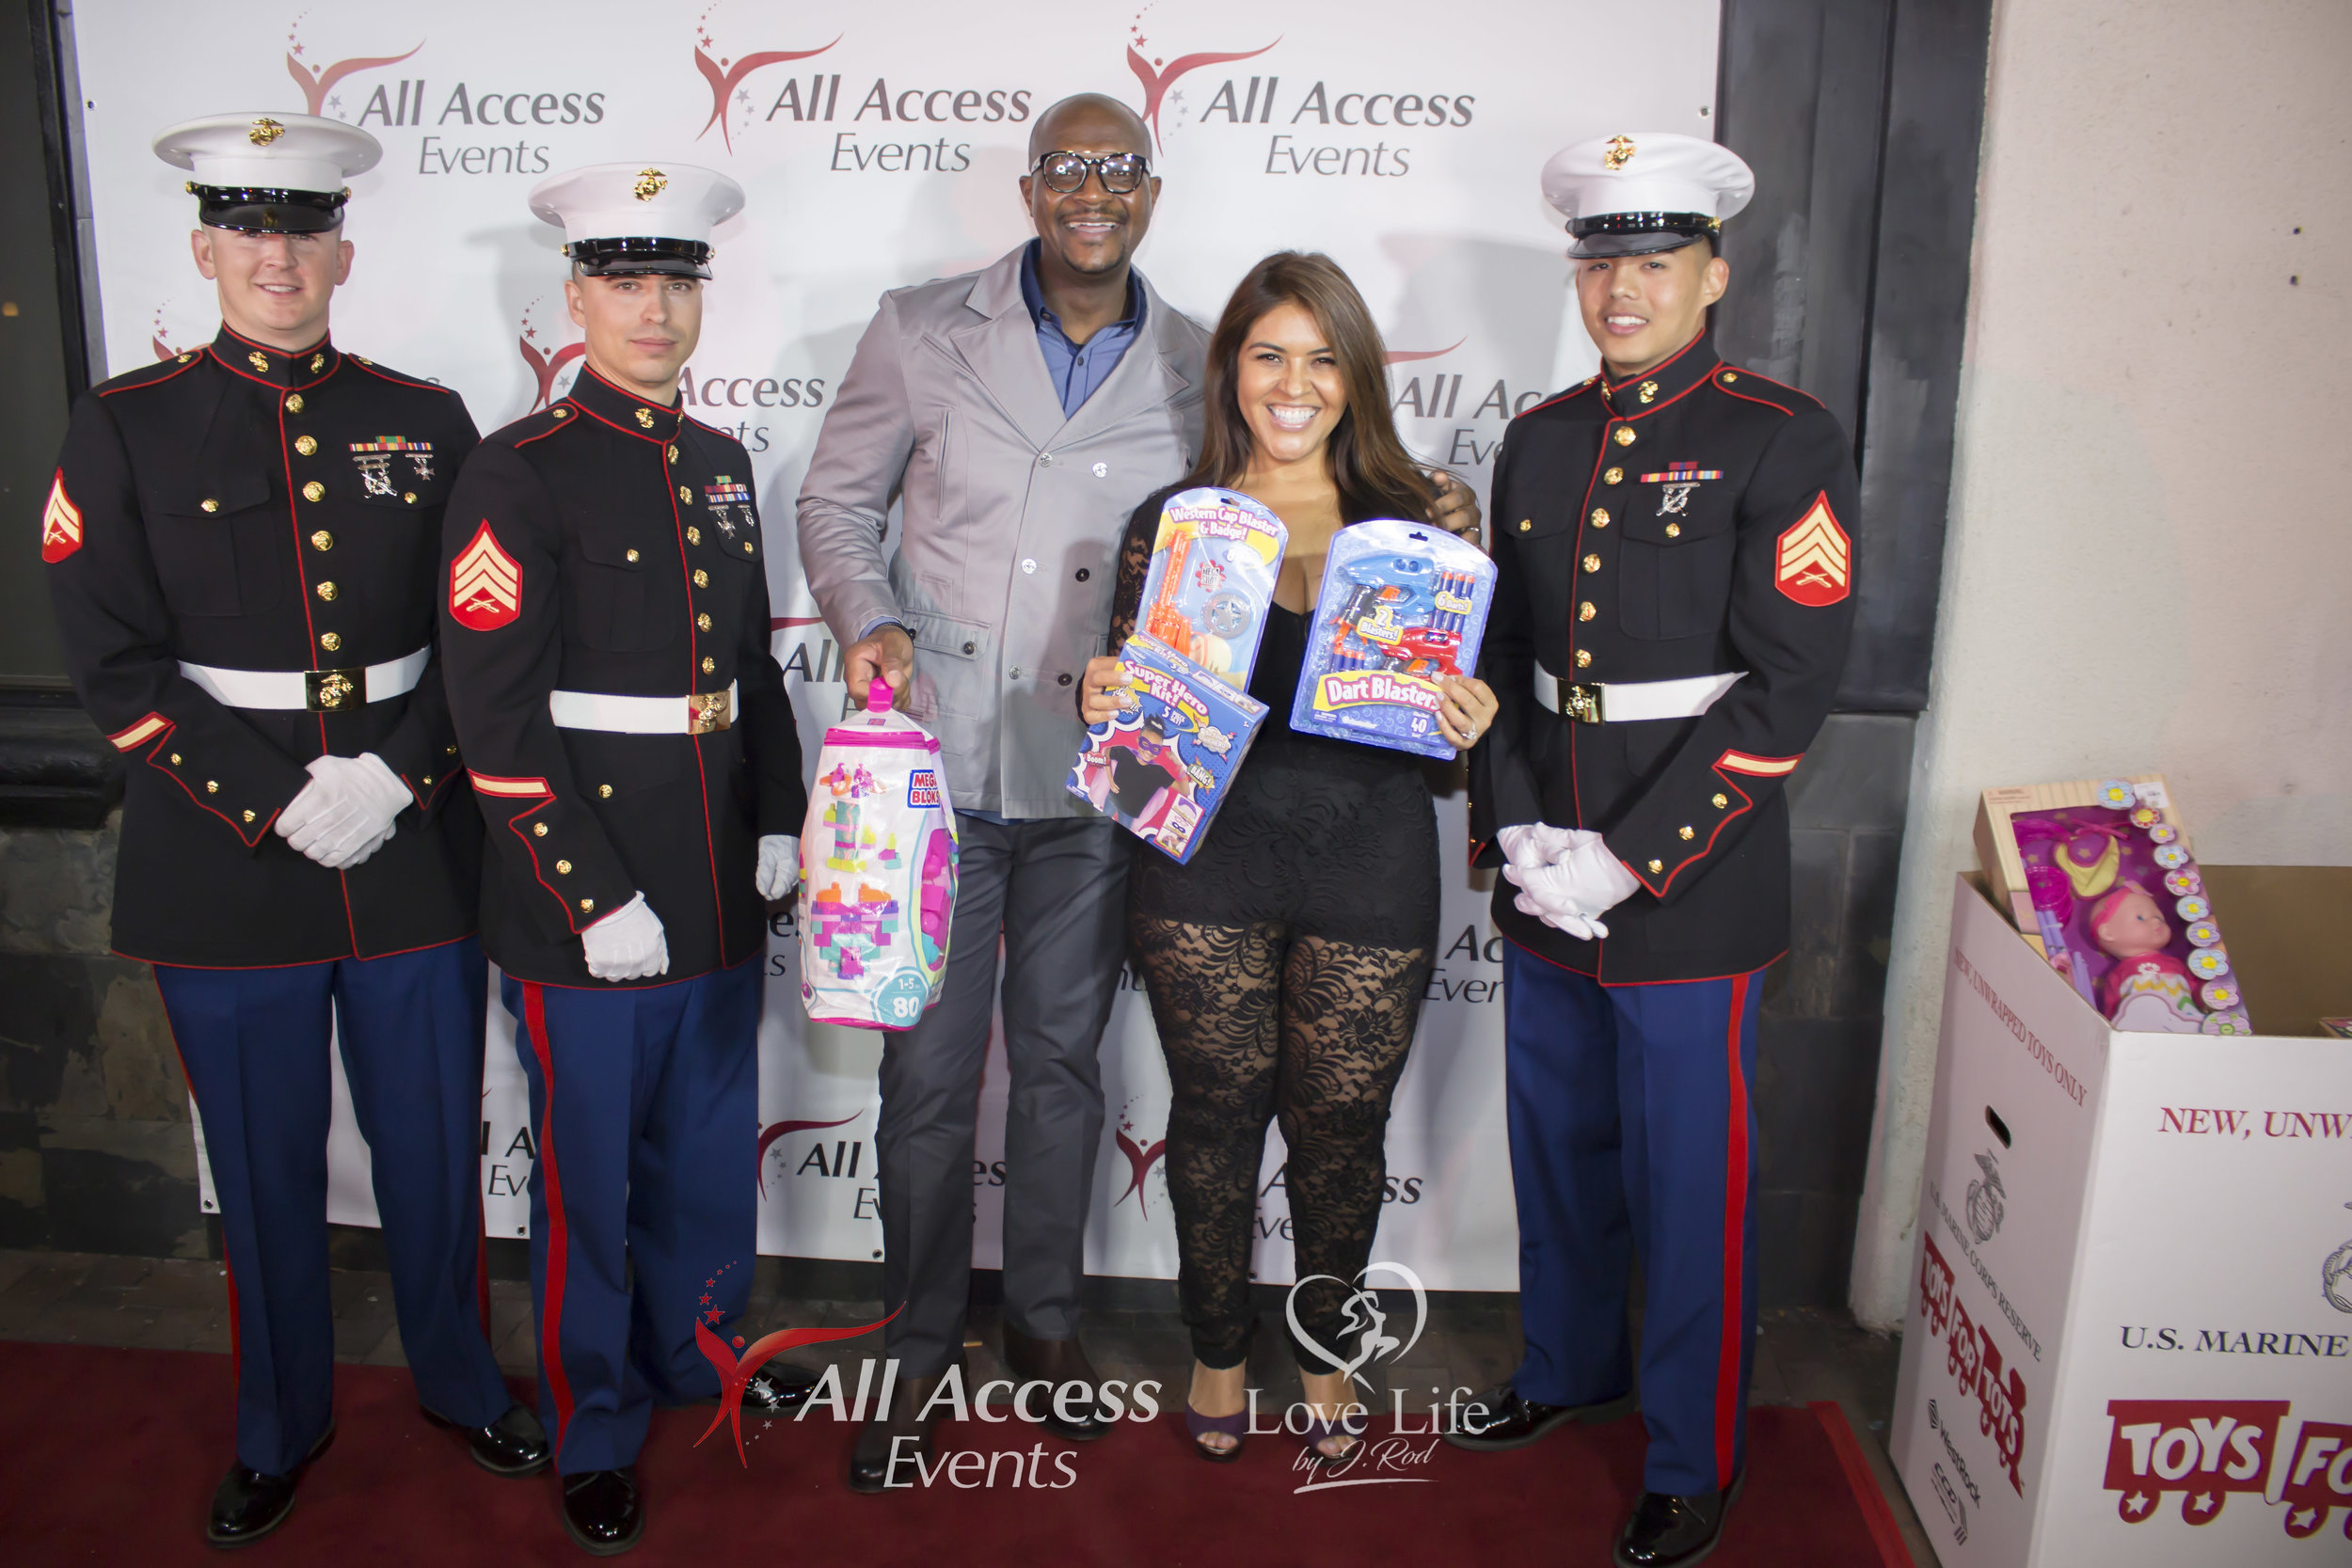 All Access Events Toy Drive - 12-13-17_197.jpg